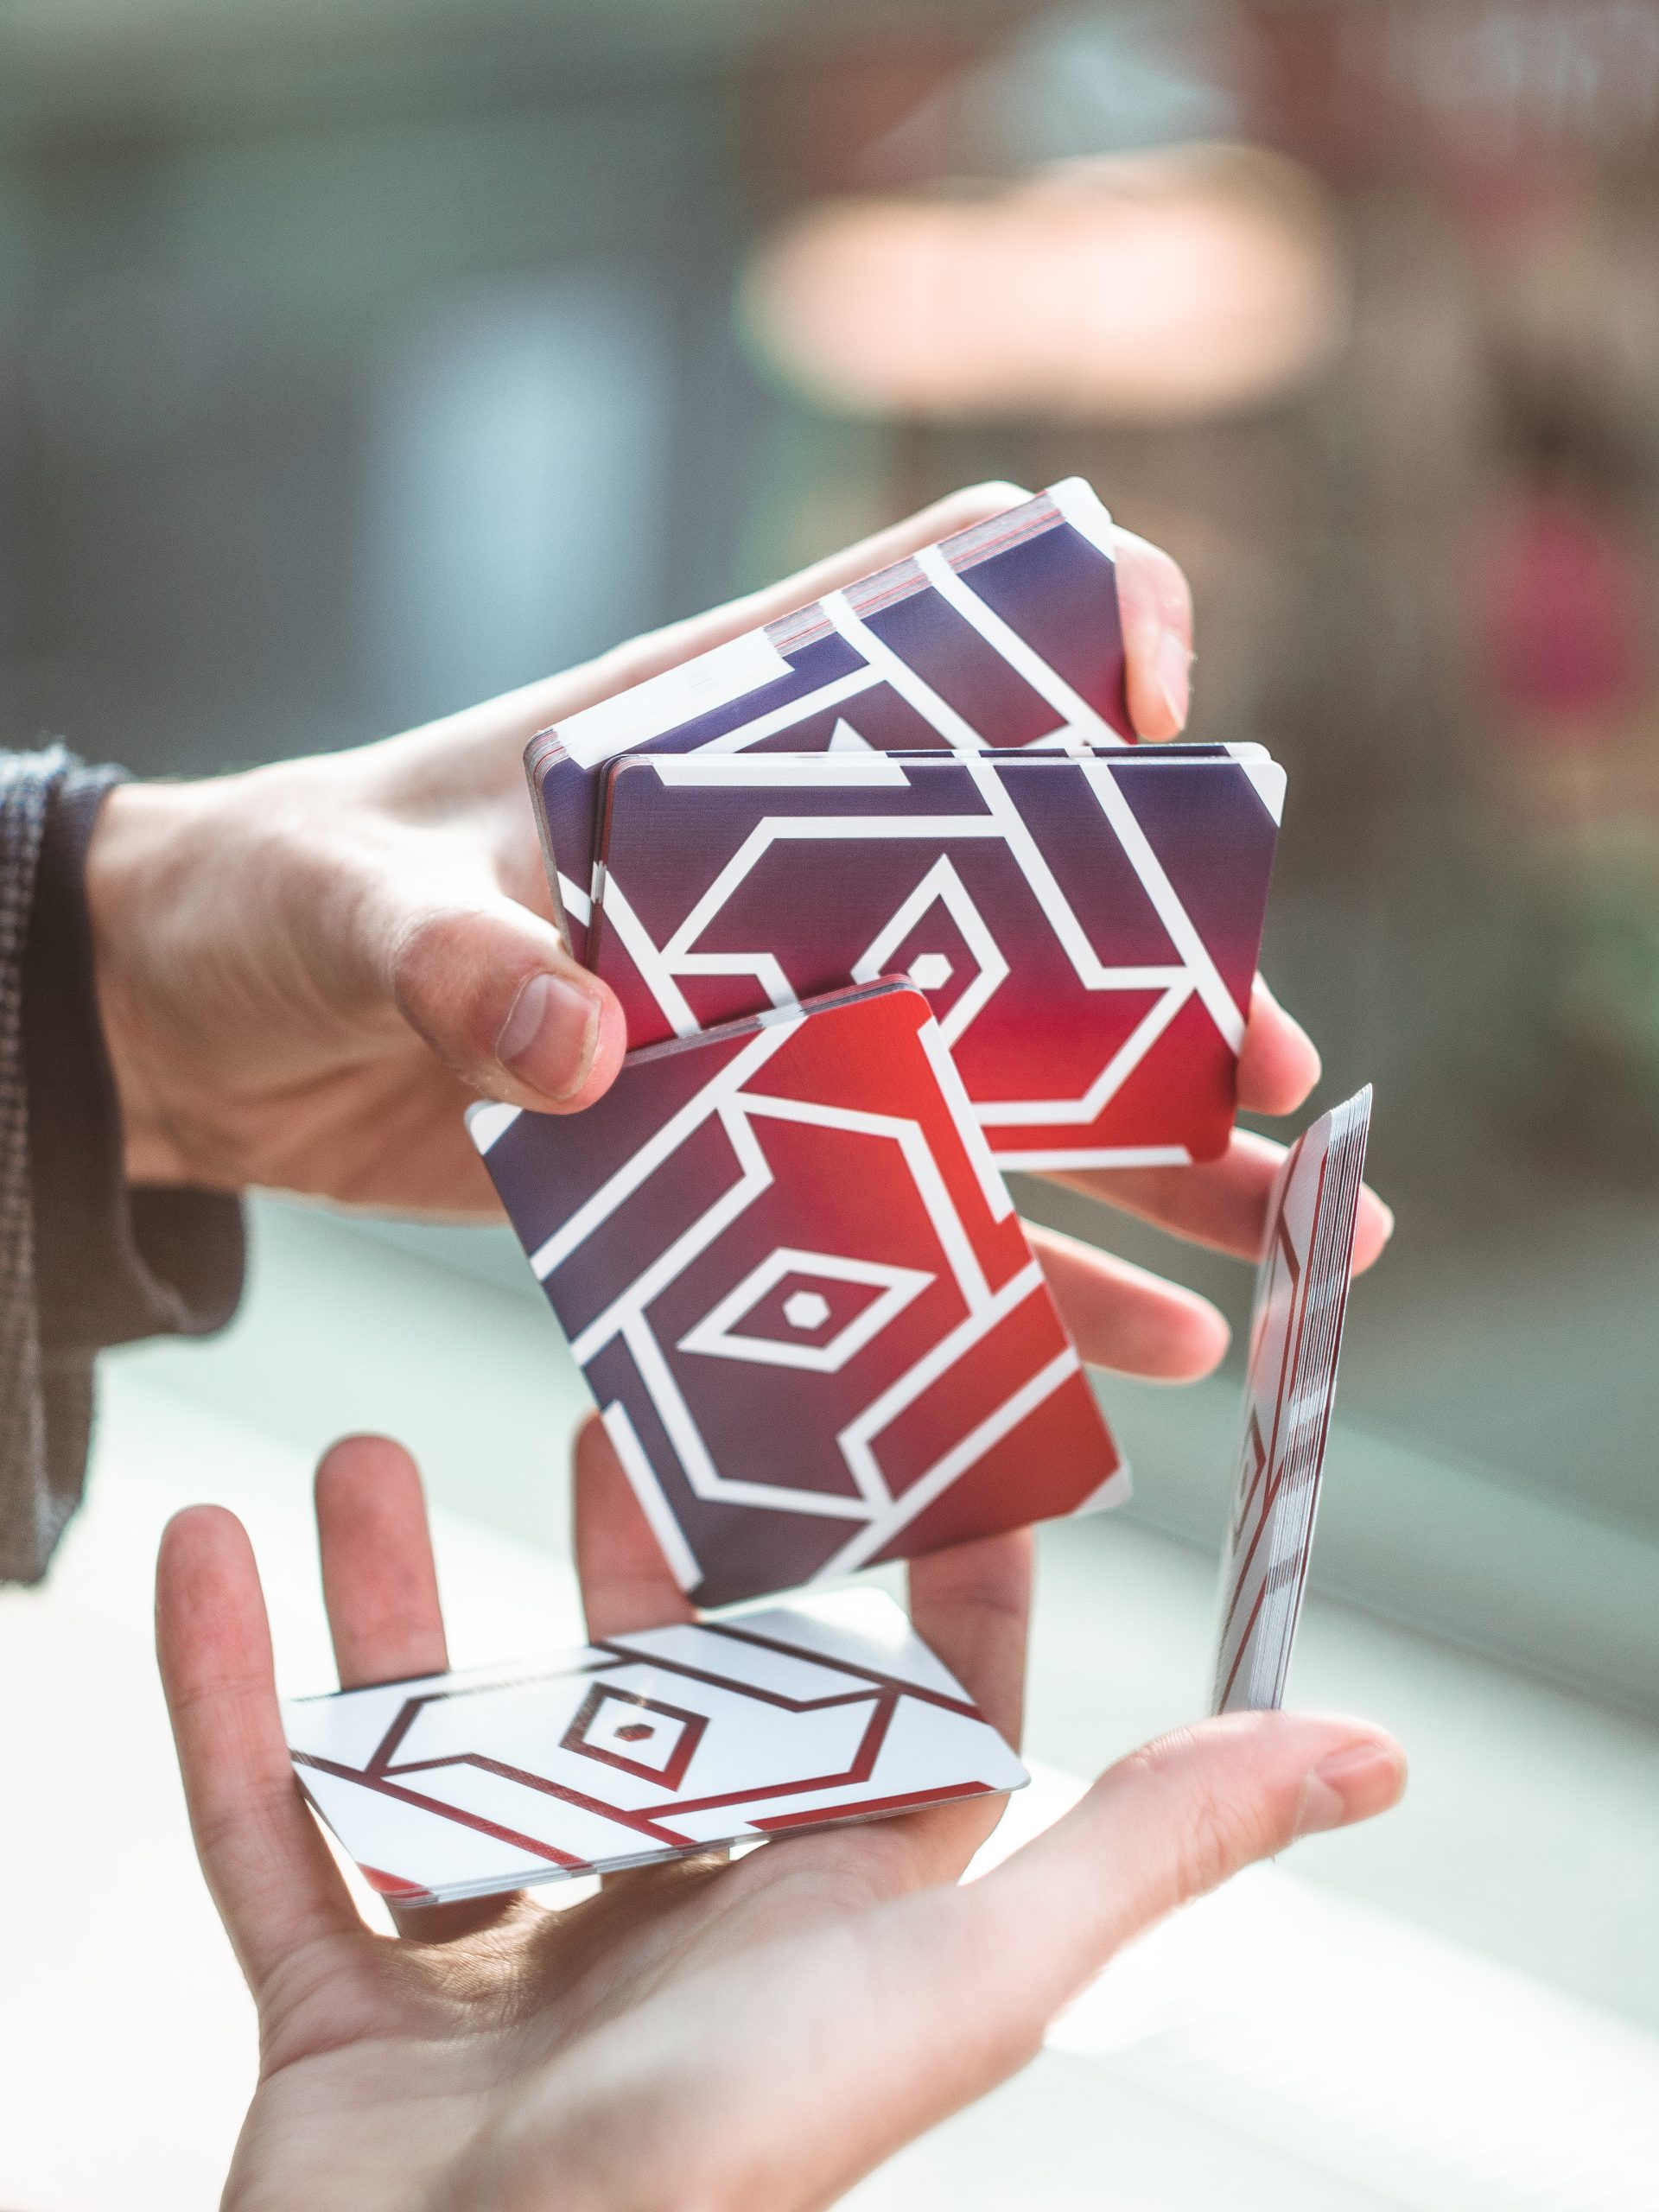 COPAG 310 ALPHA – developed for cardistry